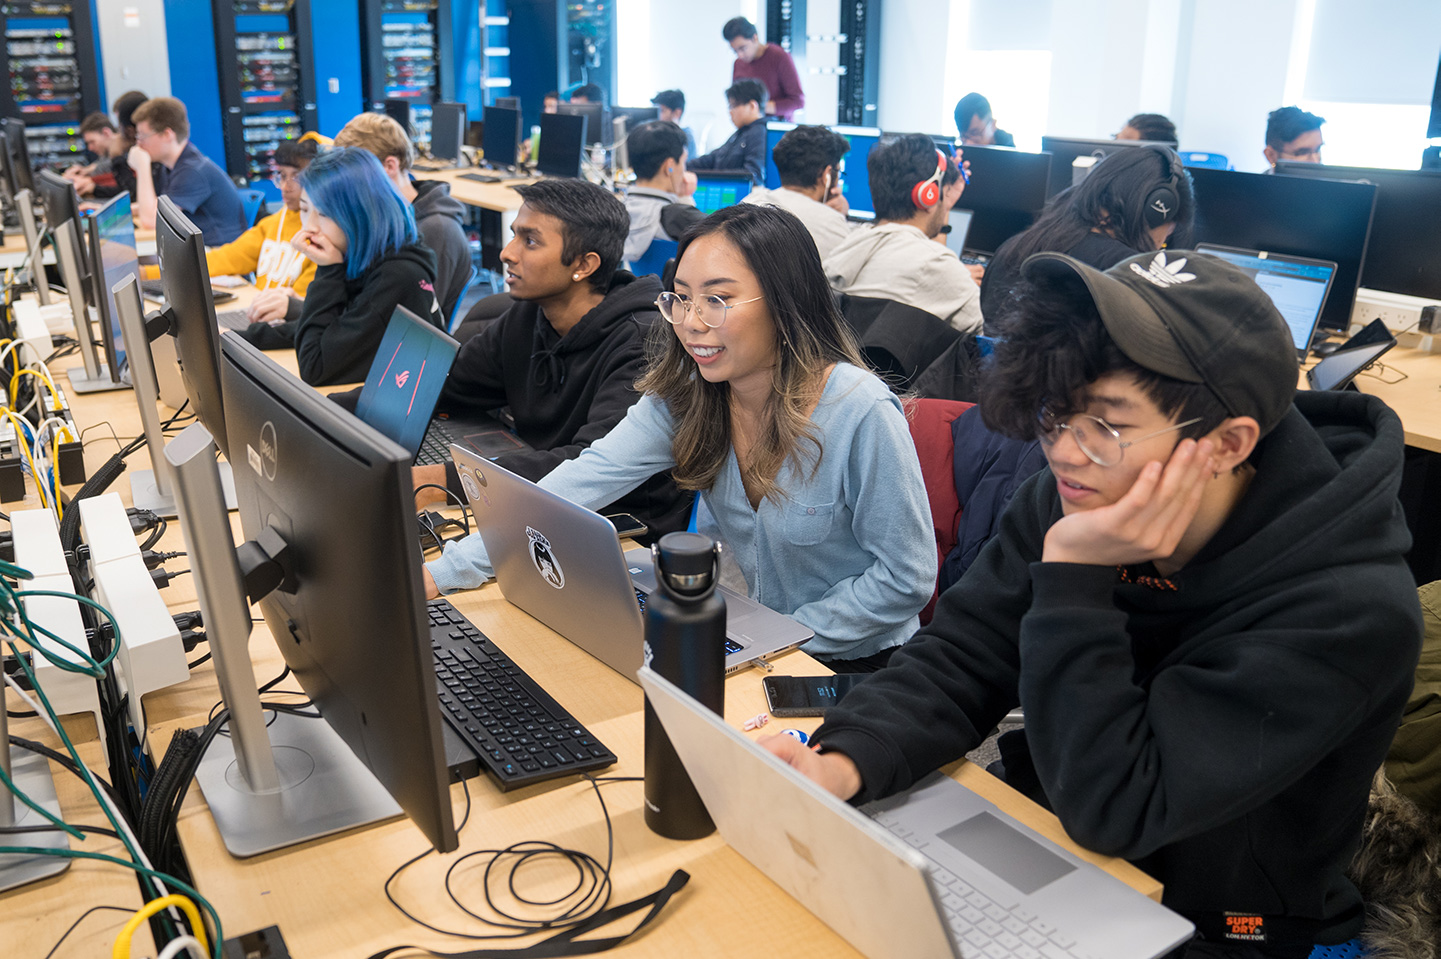 Students in a computer lab at Ontario Tech